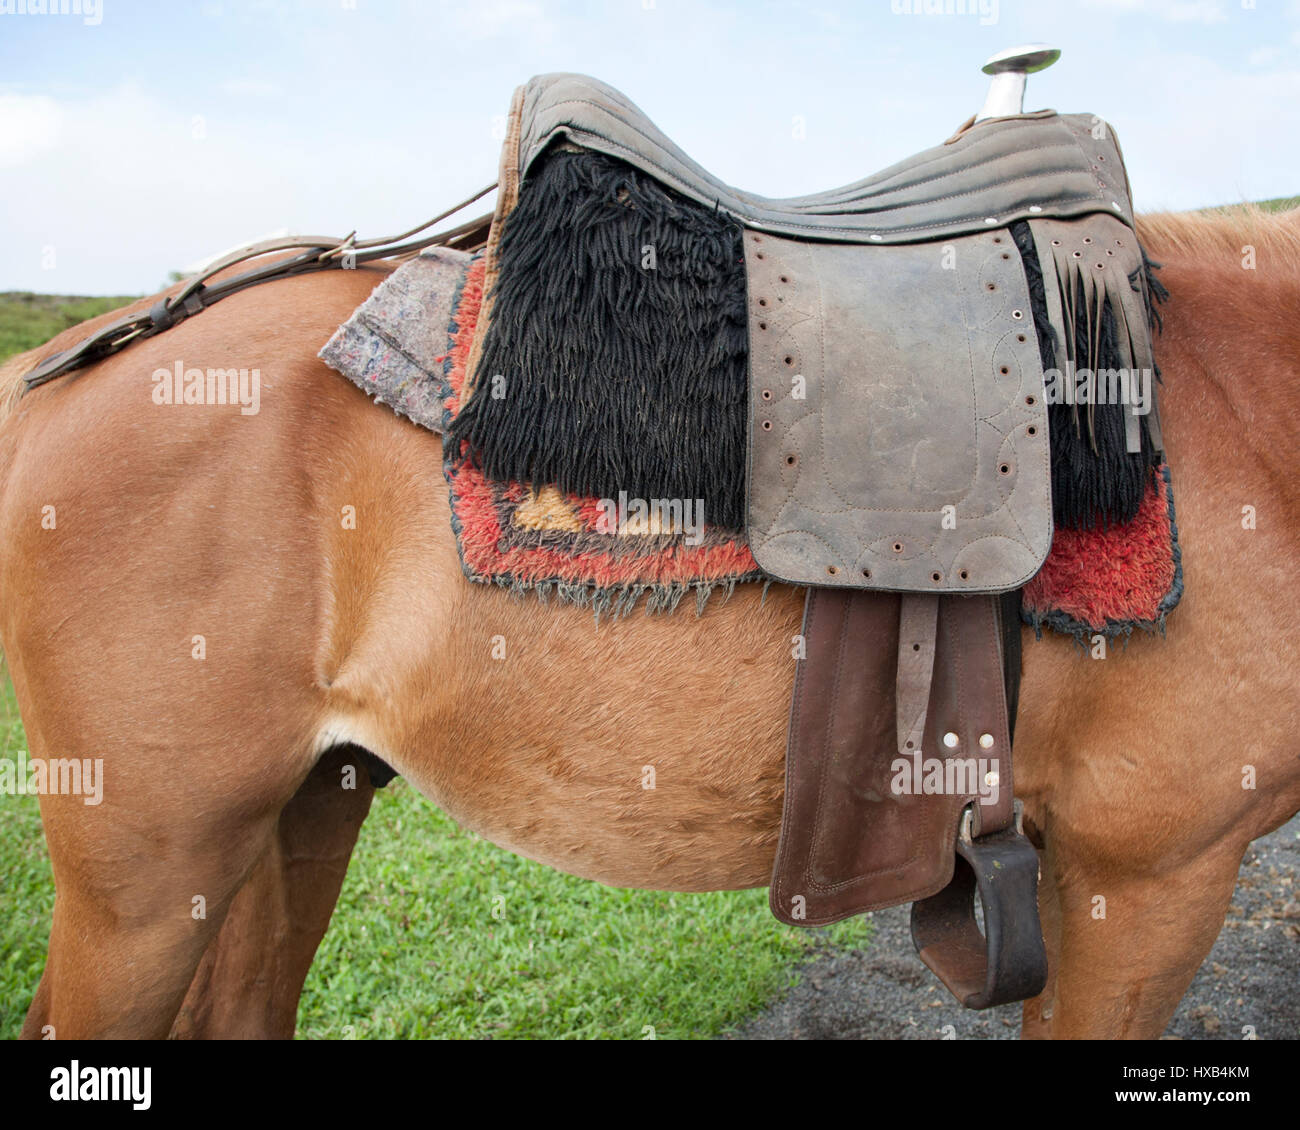 Western Saddle On Criollo Horse Ready To Carry Visitors On Trail Ride Stock Photo Alamy